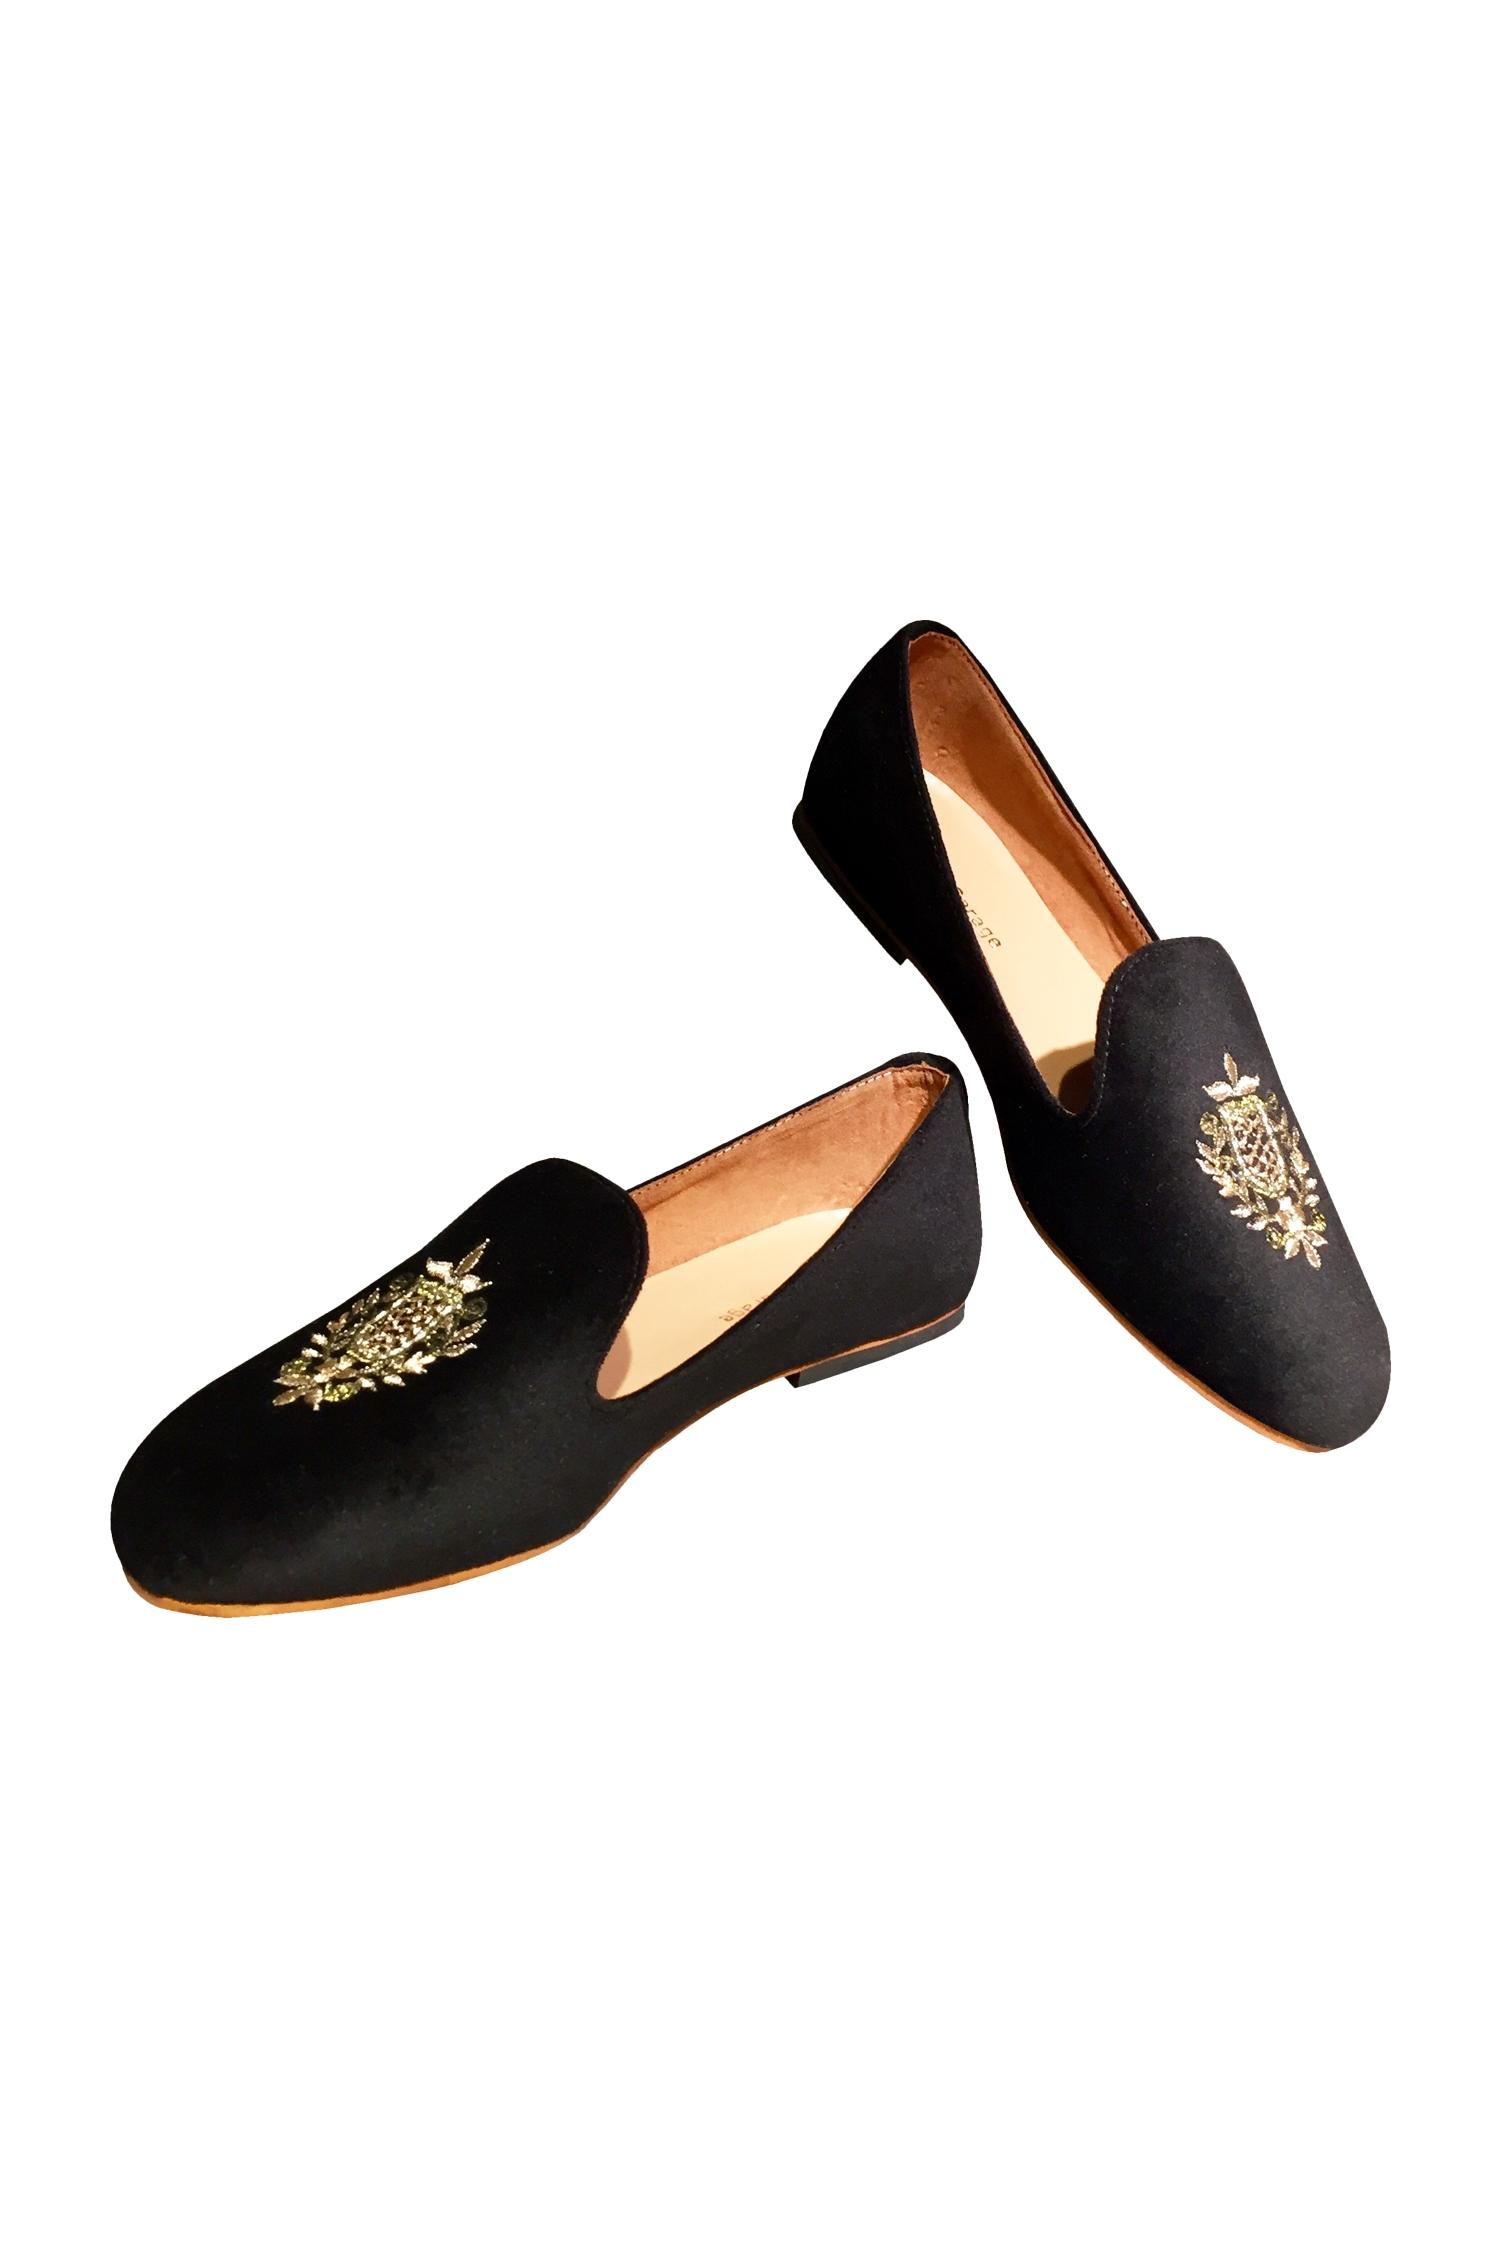 Black velvet handcrafted loafers.